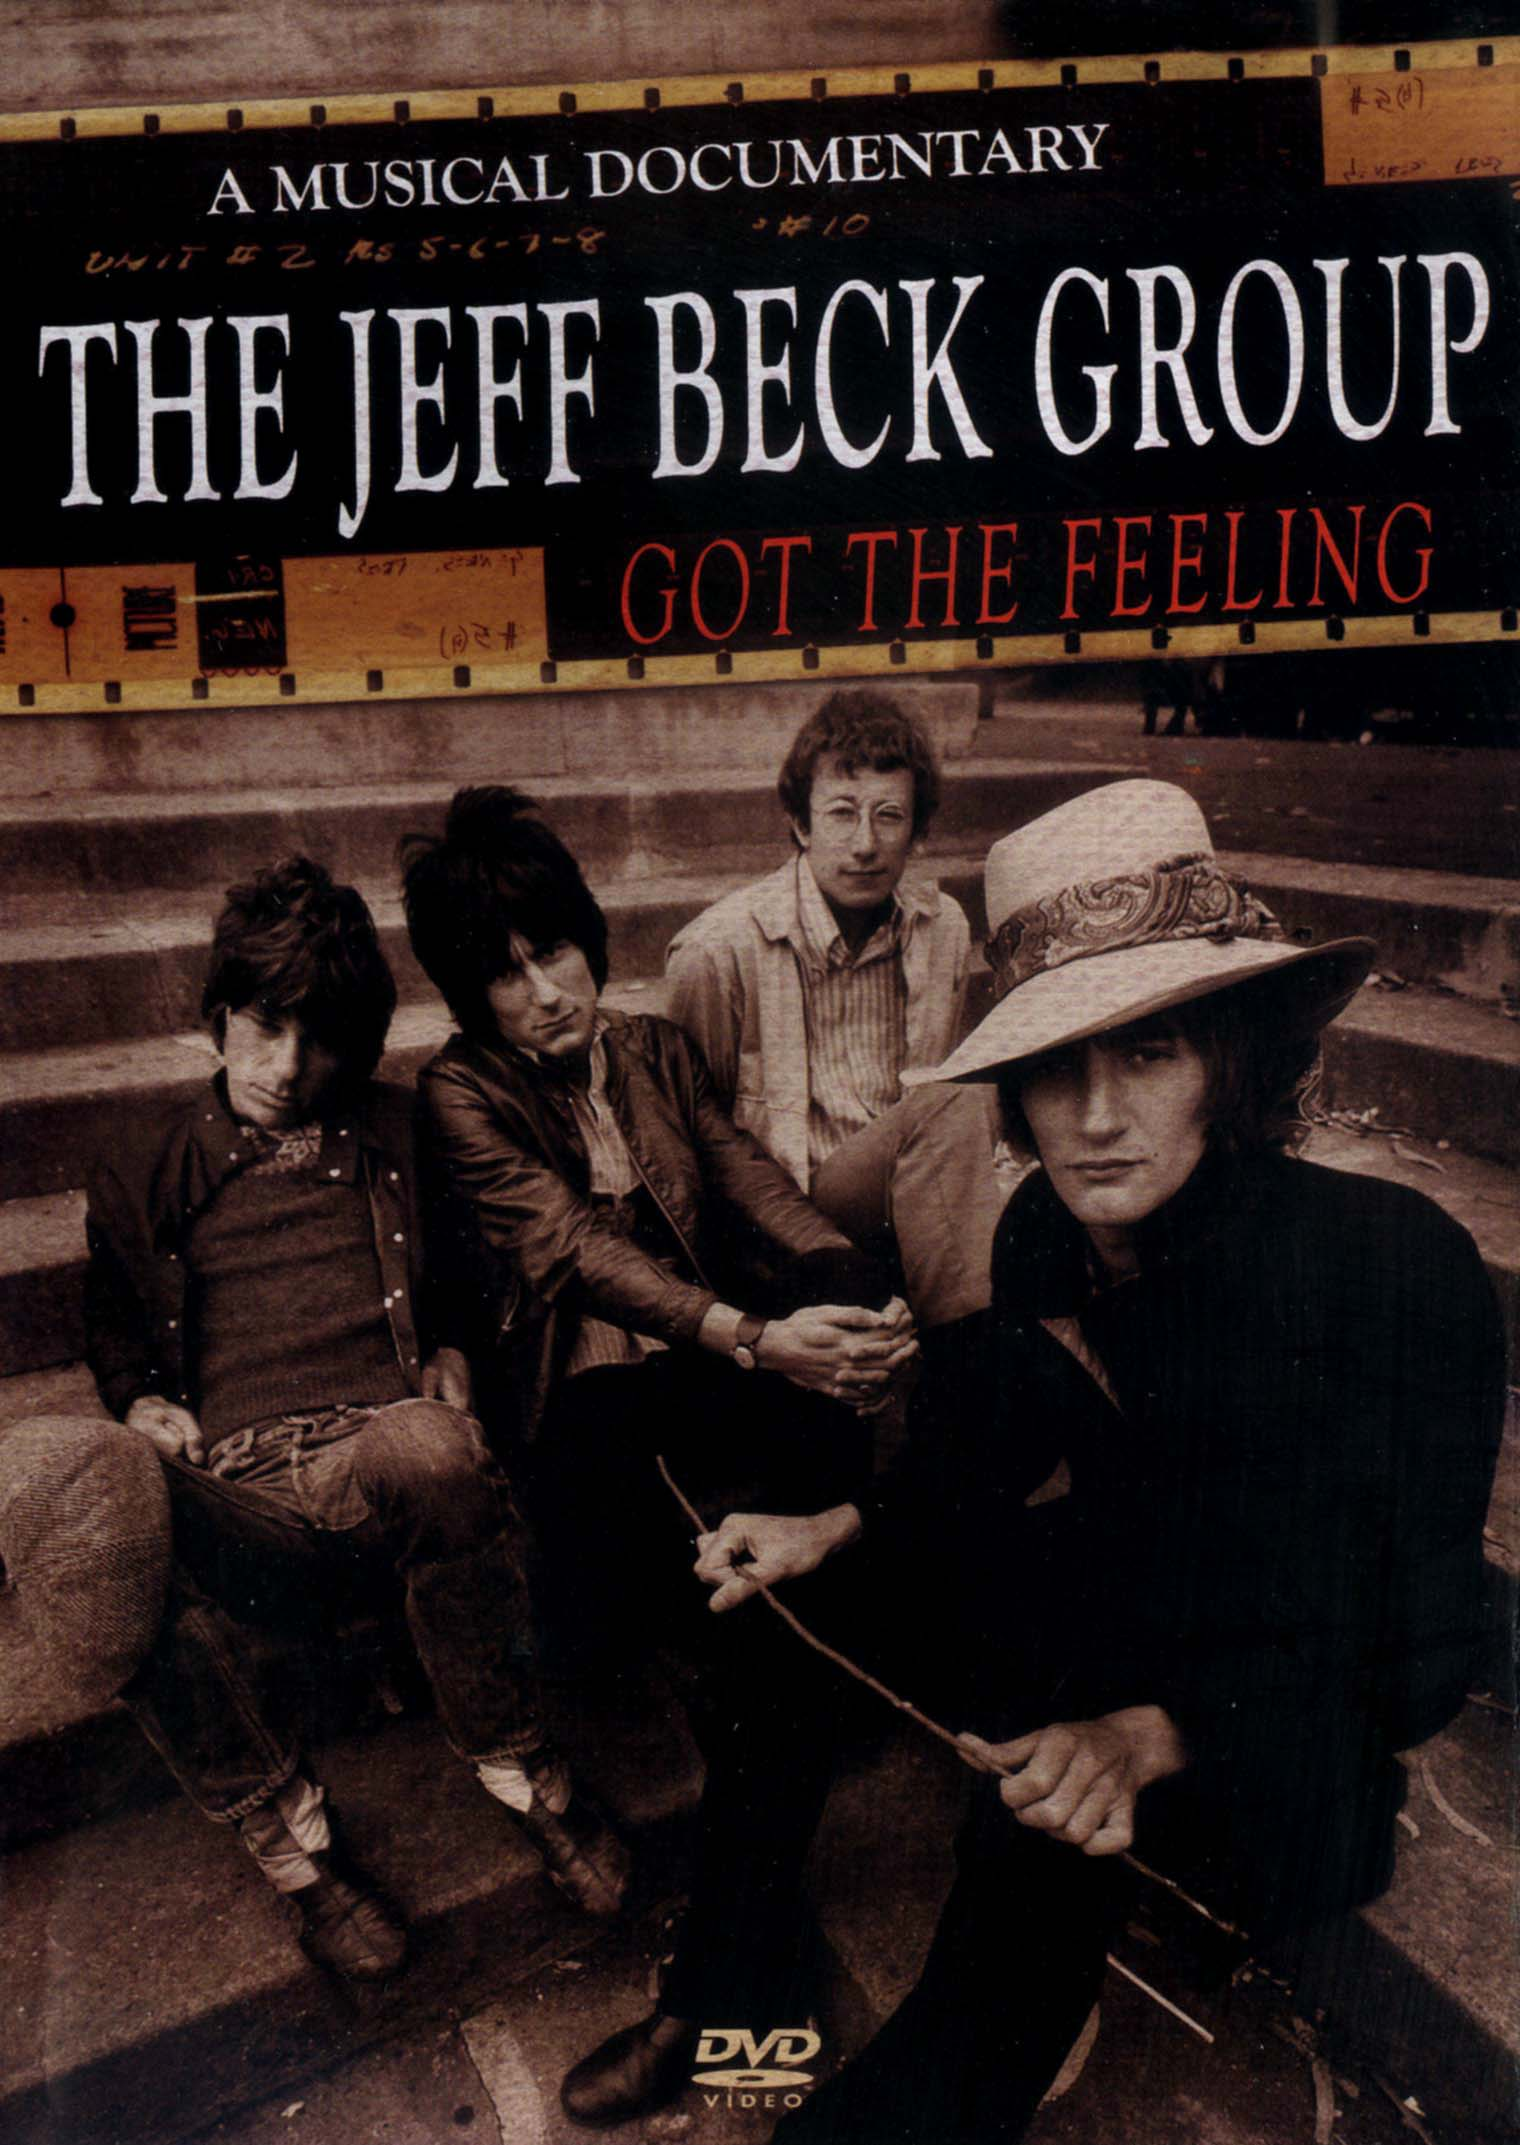 The Jeff Beck Group: Got the Feeling